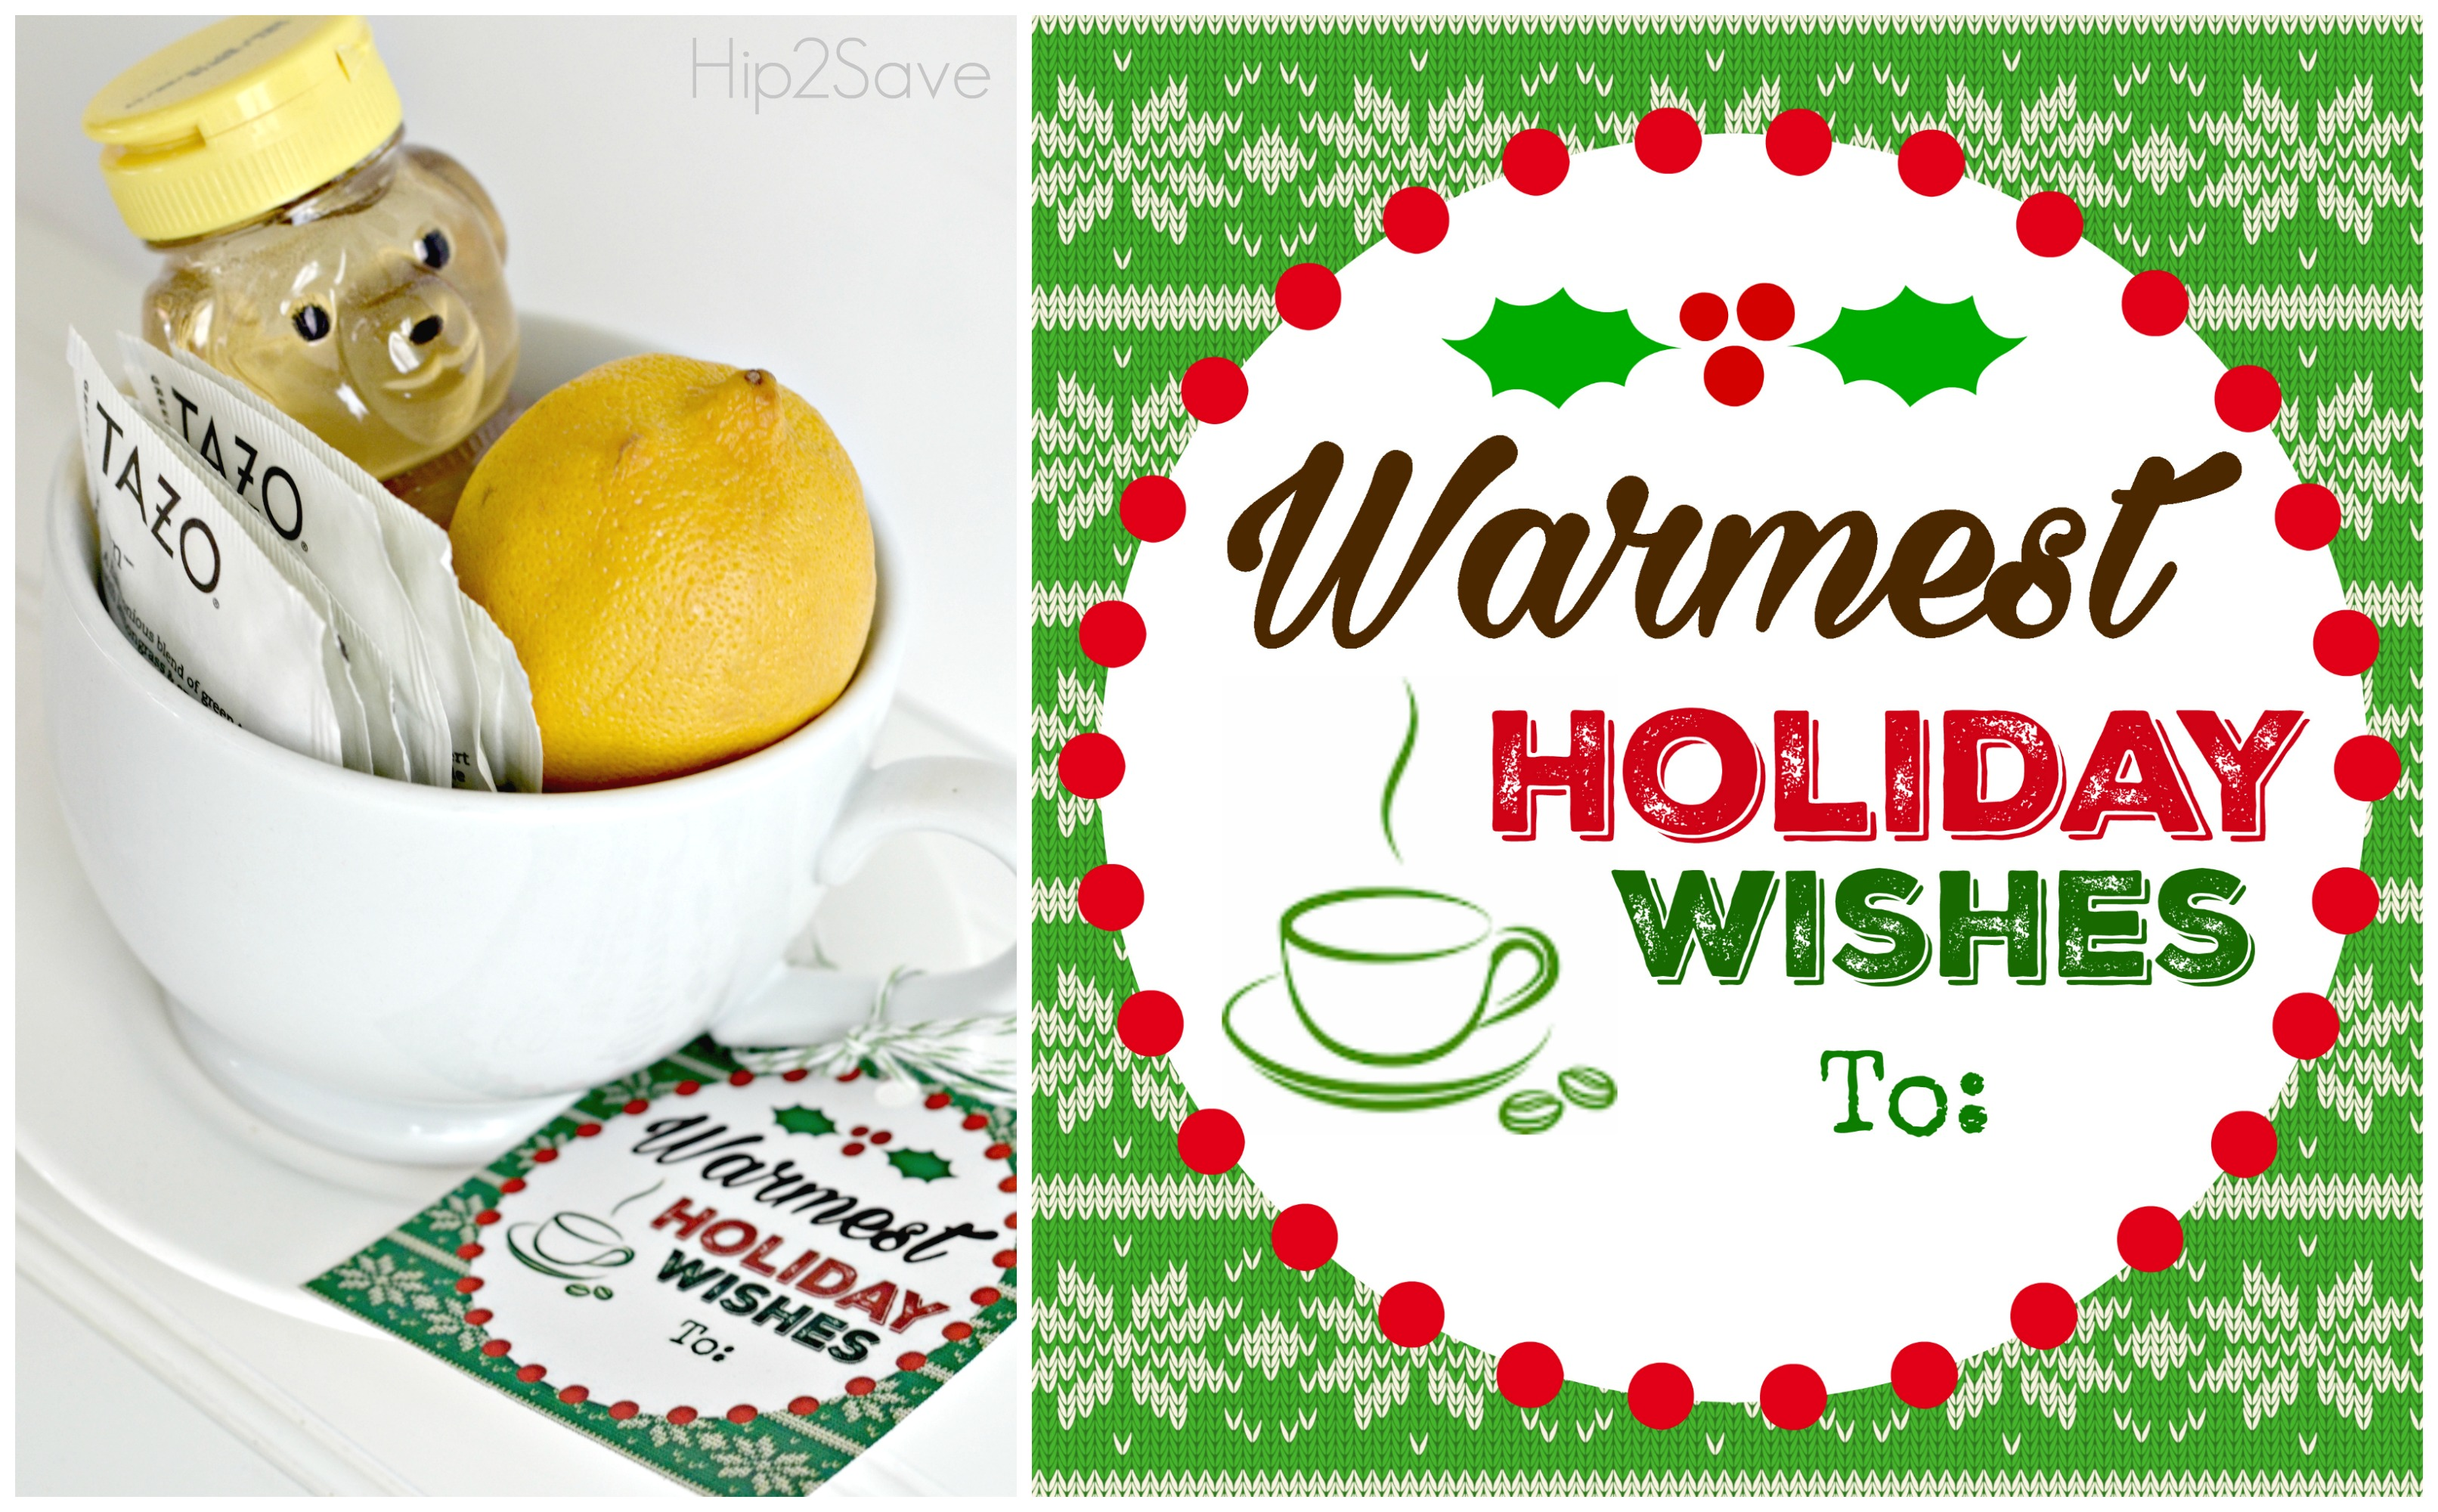 Tea Lover Holiday Gift Idea with Free Printable Tag Hip2Save.com